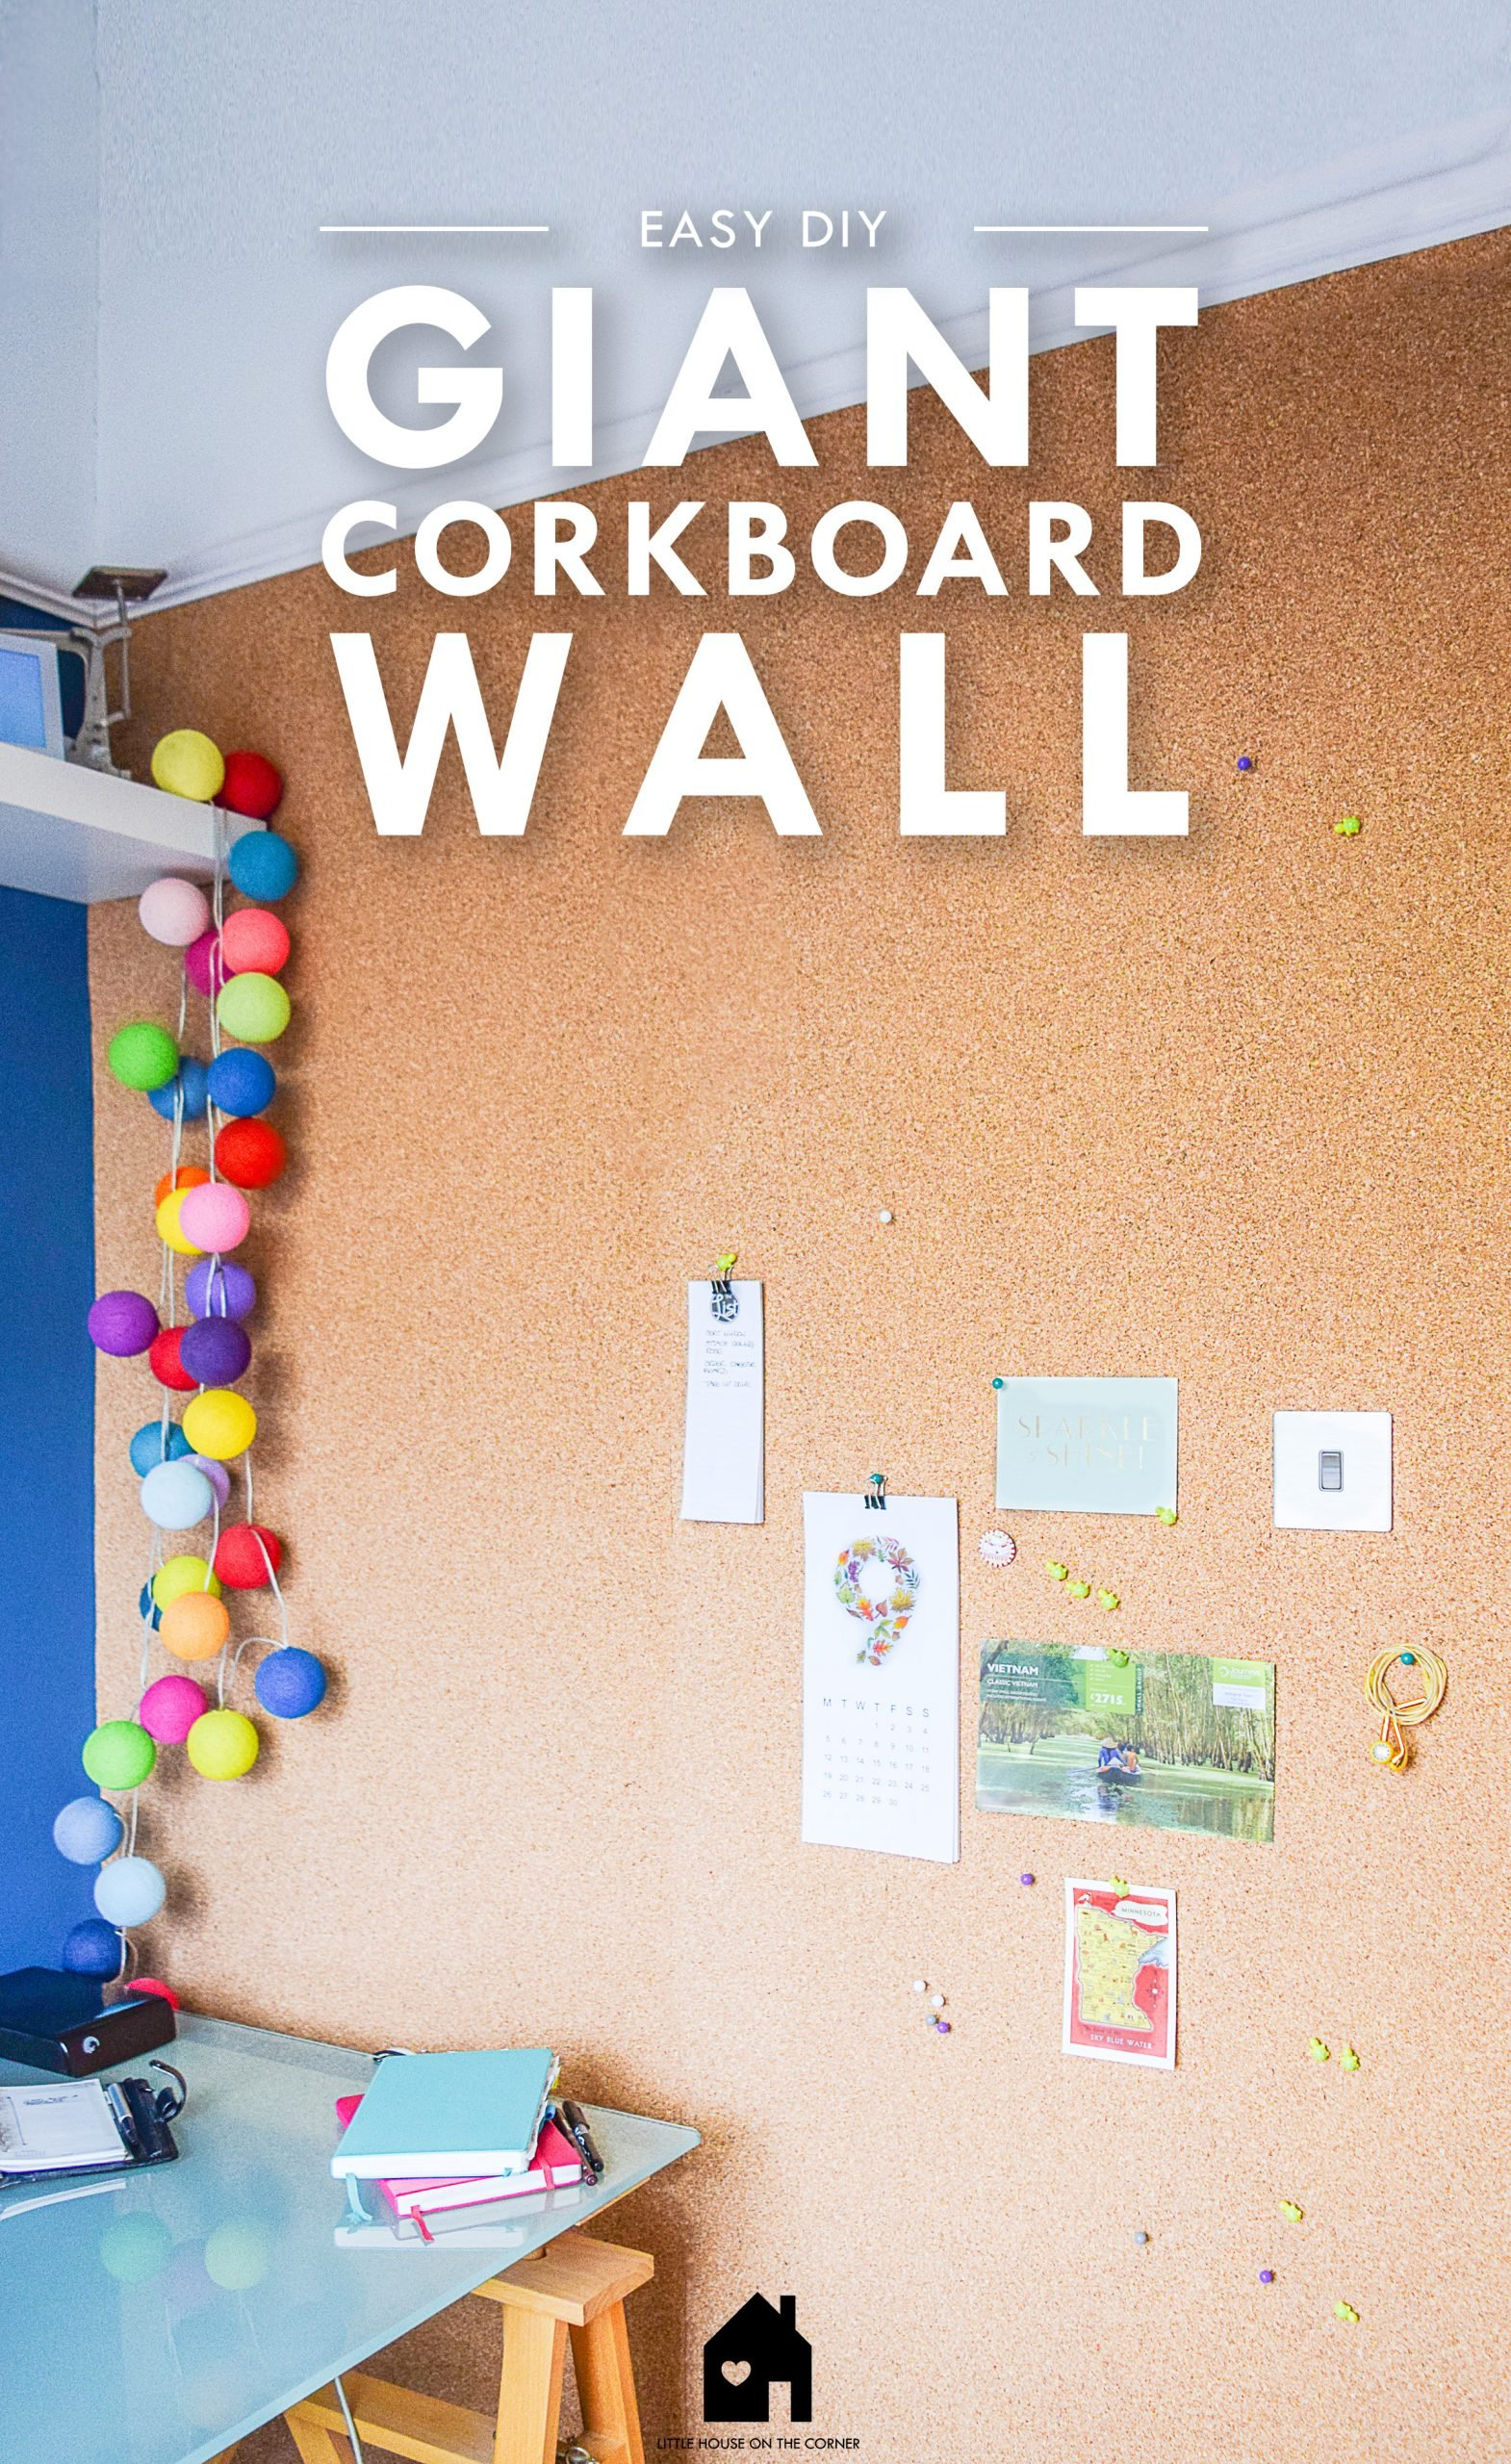 DIY Corkboard Wall - How To Install A Corkboard Wall | Little House On The Corner